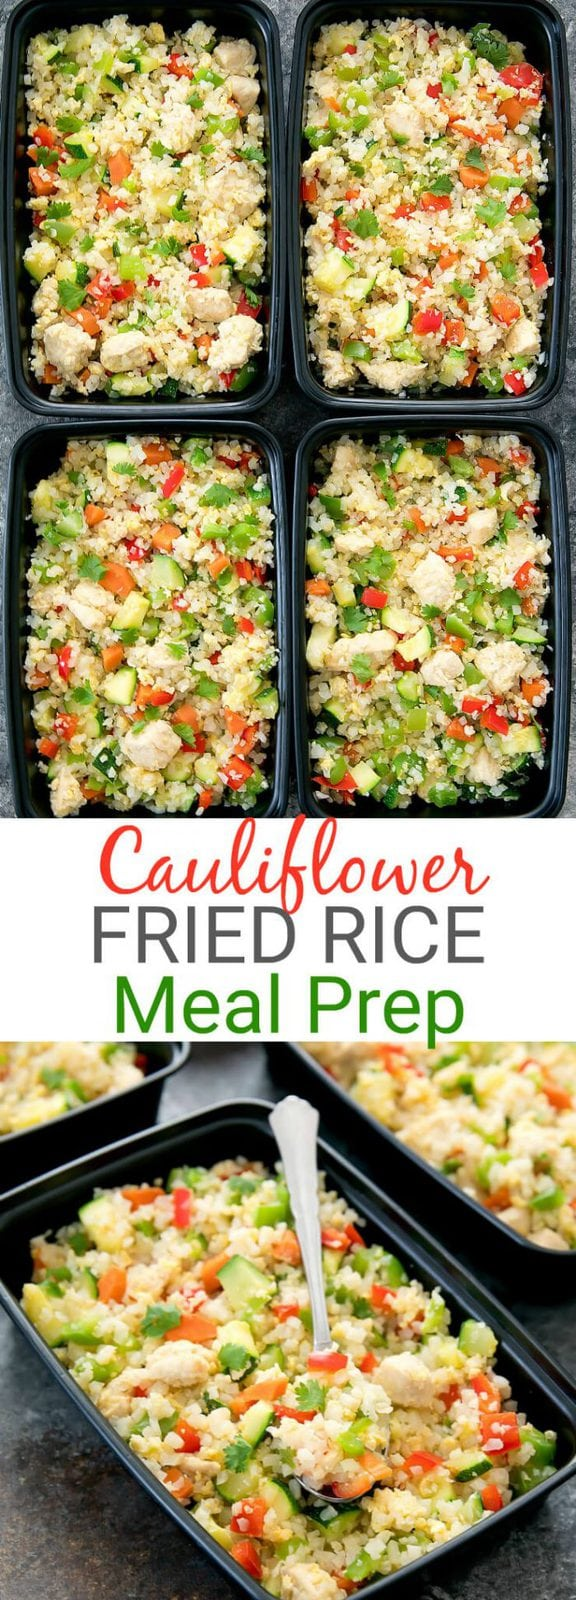 Chicken Cauliflower Fried Rice Weekly Meal Prep